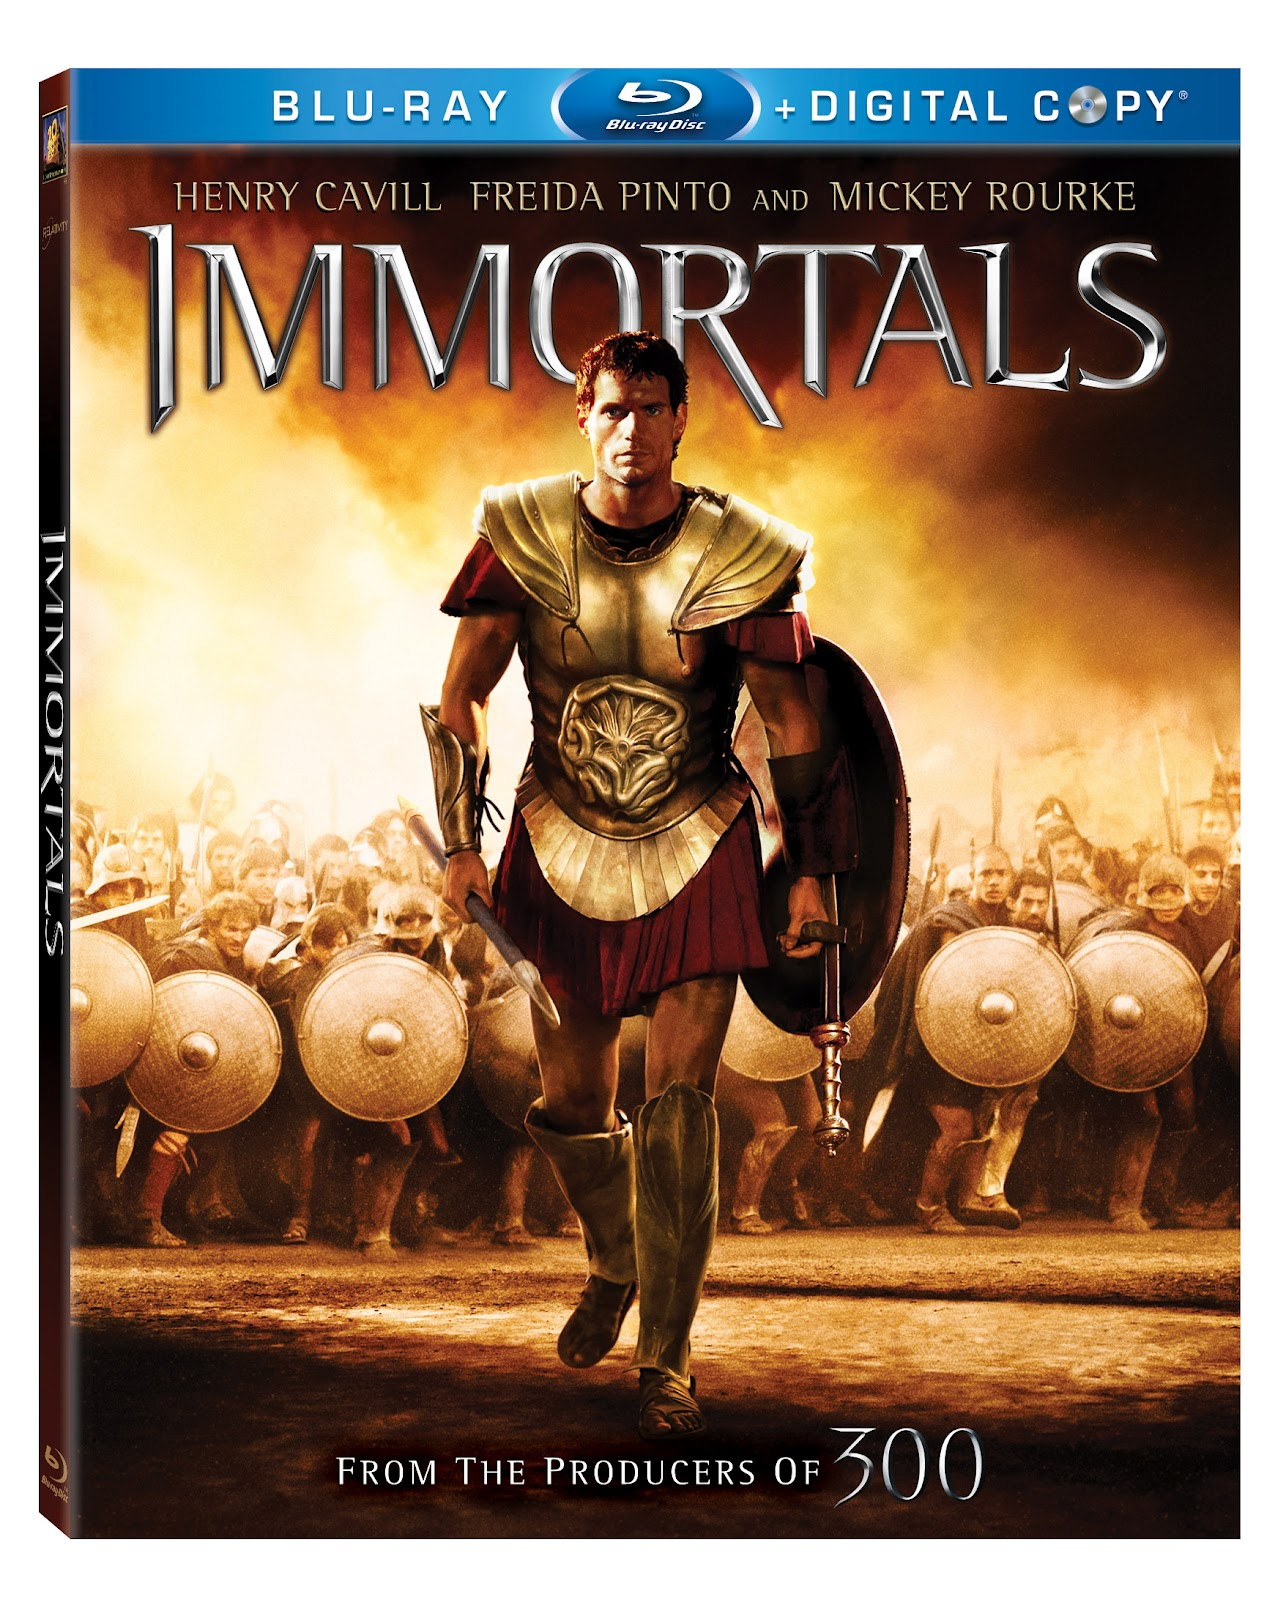 Warriors Come Out And Play Movie Cast: JAVZILLA: IMMORTALS DVD Review